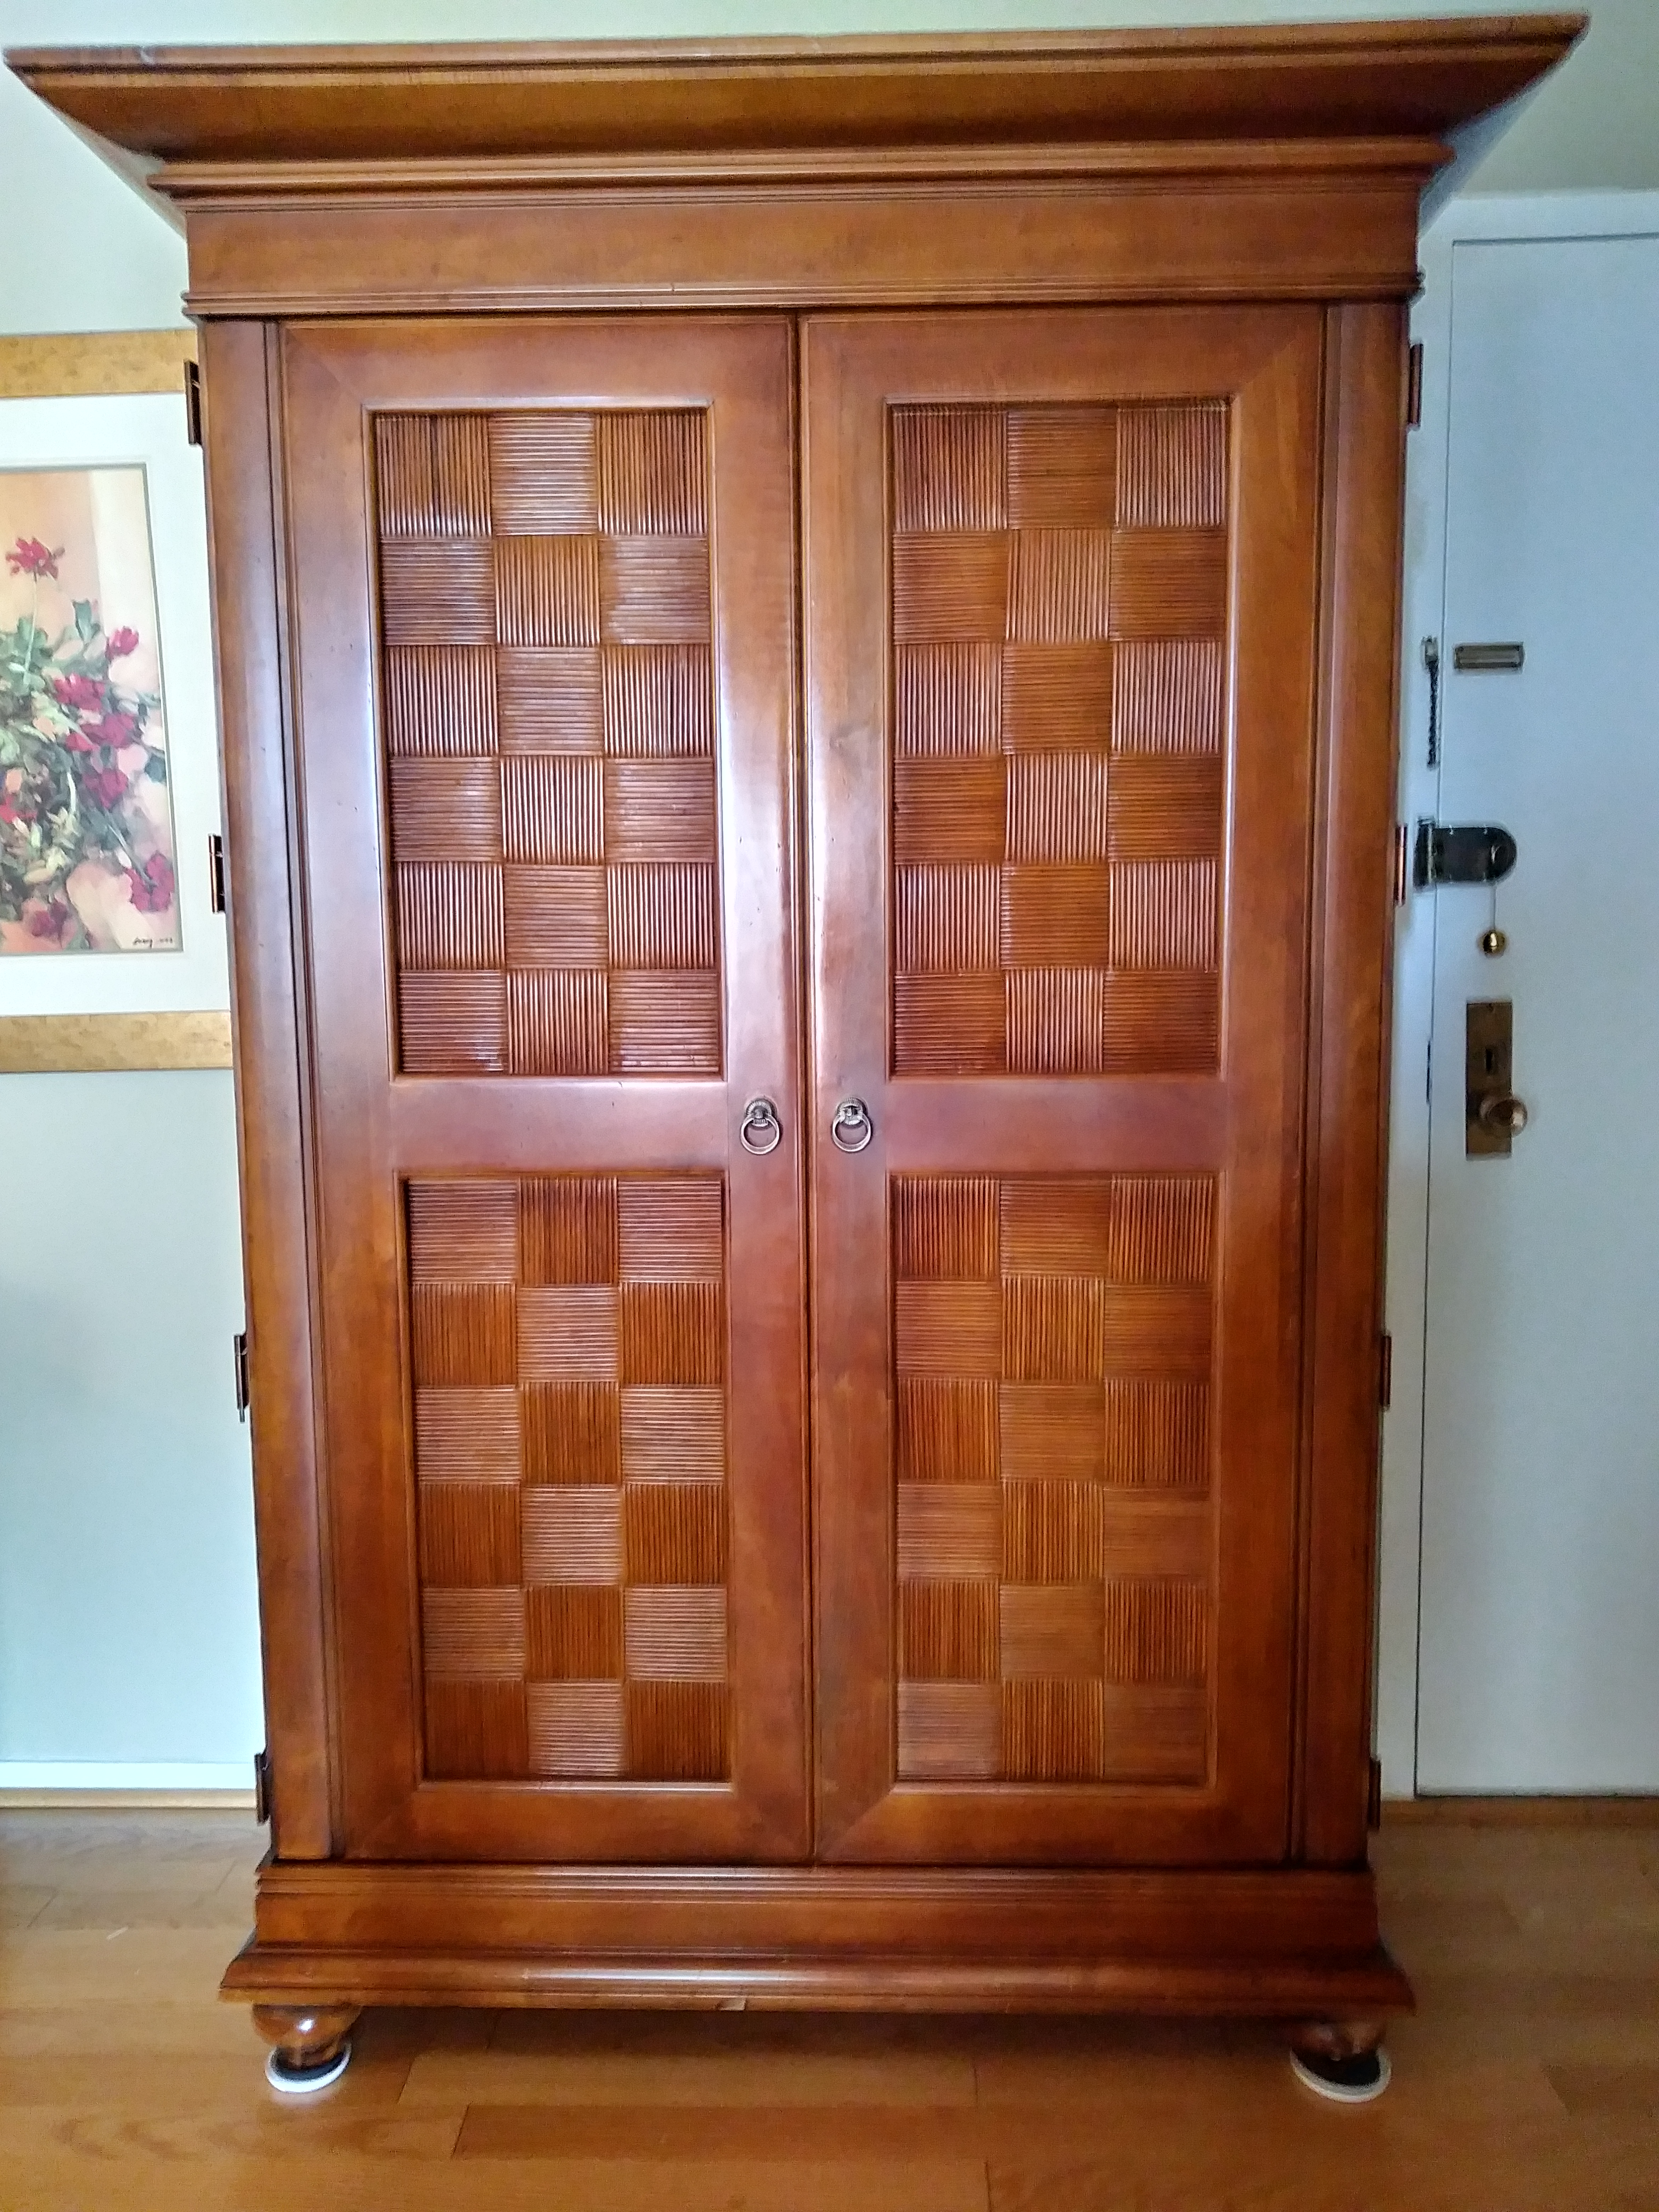 Ordinaire Stanley Furniture Wooden Armoire   Image 6 Of 9